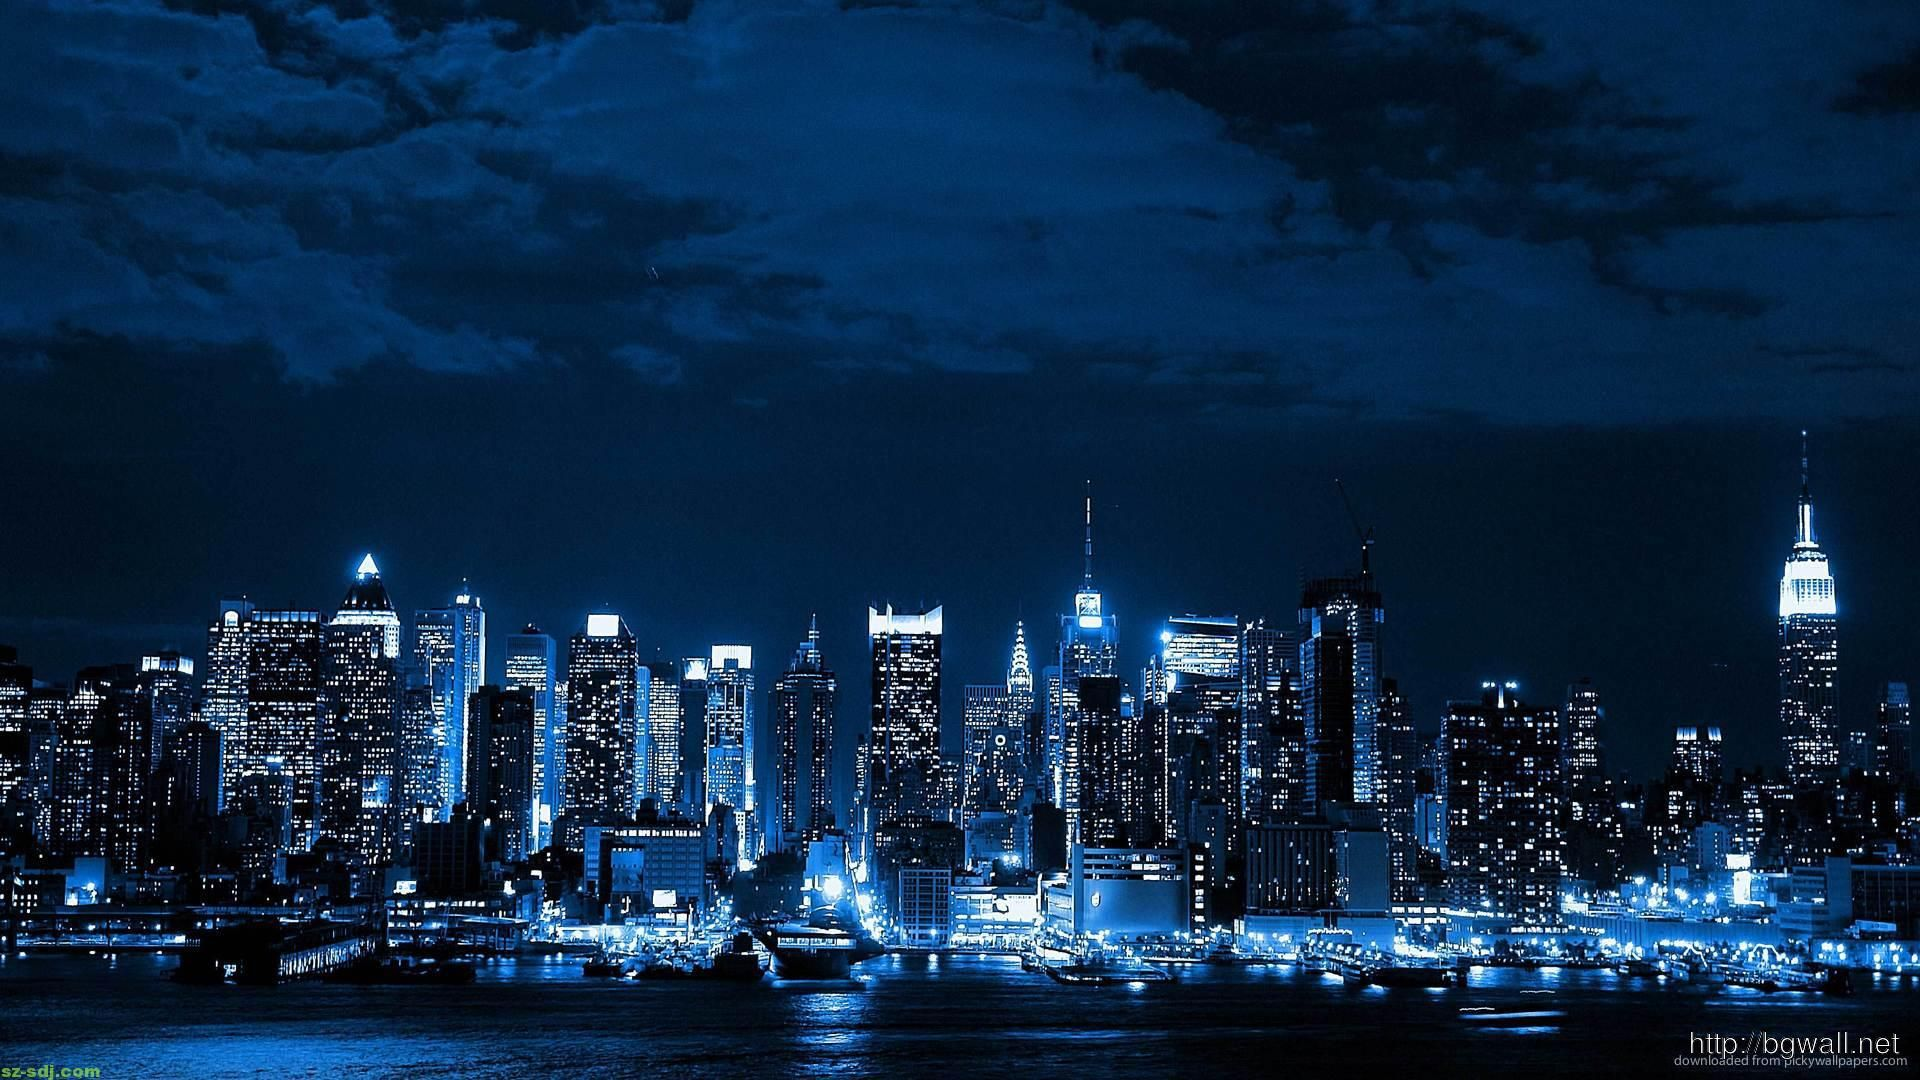 Night City Wallpaper Wide City wallpaper, Cityscape